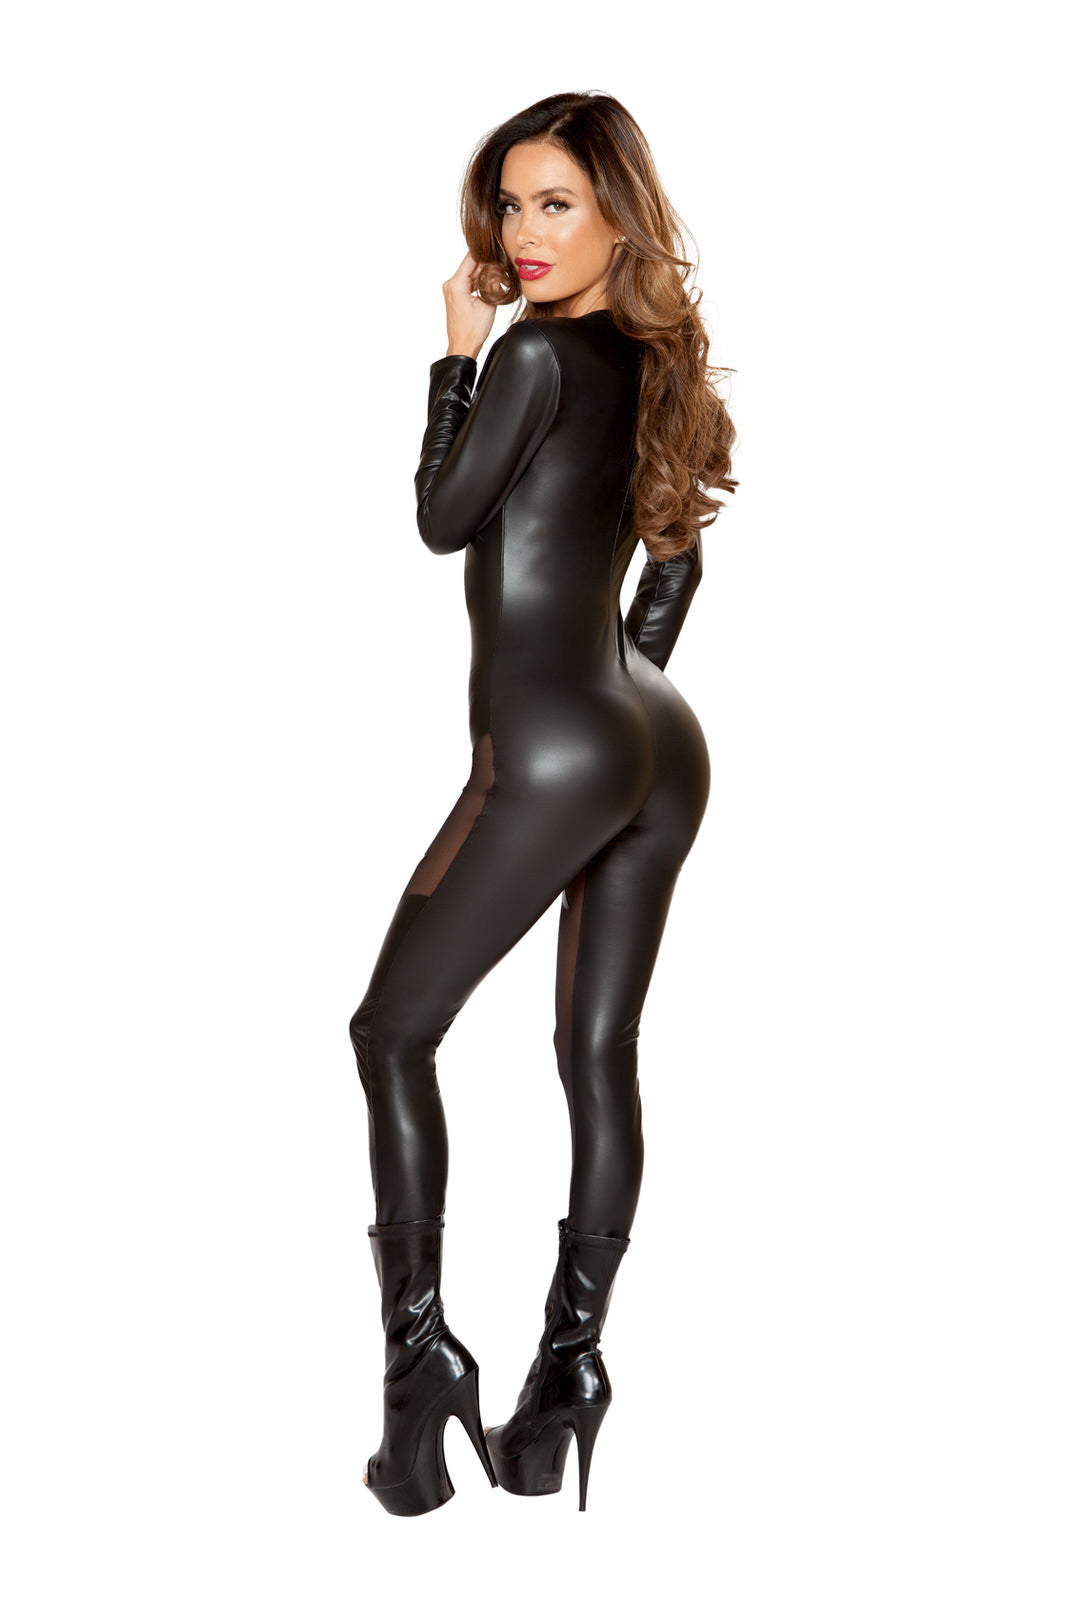 1pc Evil Devil ${description} | Roma Costume and Roma Confidential wholesale manufacturer of Women Apparel bulk world wide wholesale and world wide drop ship services for Adult Halloween Costumes, Sexy and Elegant Lingerie, Rave Clothing, Club wear, and Christmas Costumes. Costumes, Roma Costume, Inc., Roma Costume, Roma Confidential, Wholesale clothing, drop ship, drop ship service, Wholesale Lingerie, Wholesale Adult Halloween Costumes, Rave Clothing, EDM Clothing, Festival Wear, Christmas Costumes, Clubwear, Club wear.